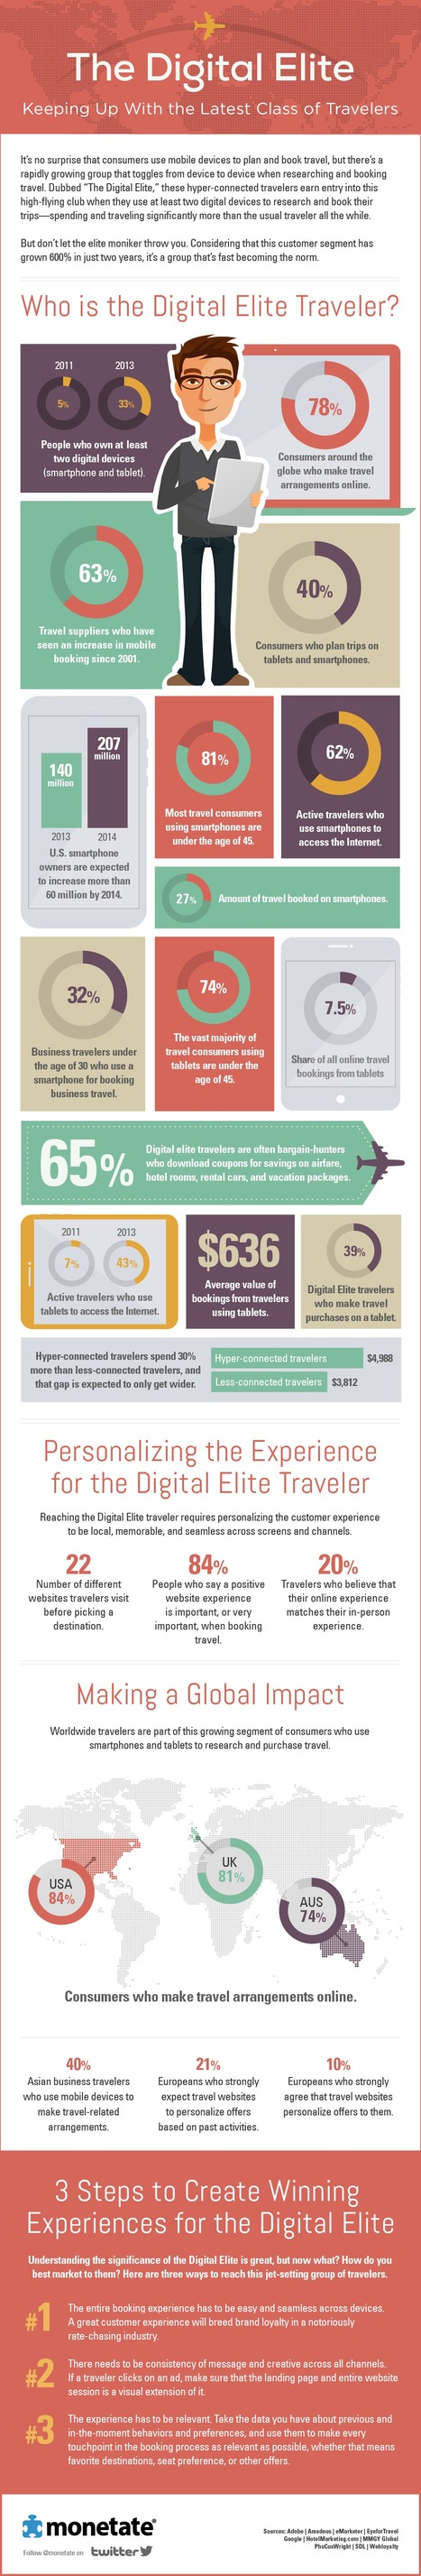 The Digital Elite - catering for hyper-connected travellers [INFOGRAPHIC] | Food Travel | Scoop.it